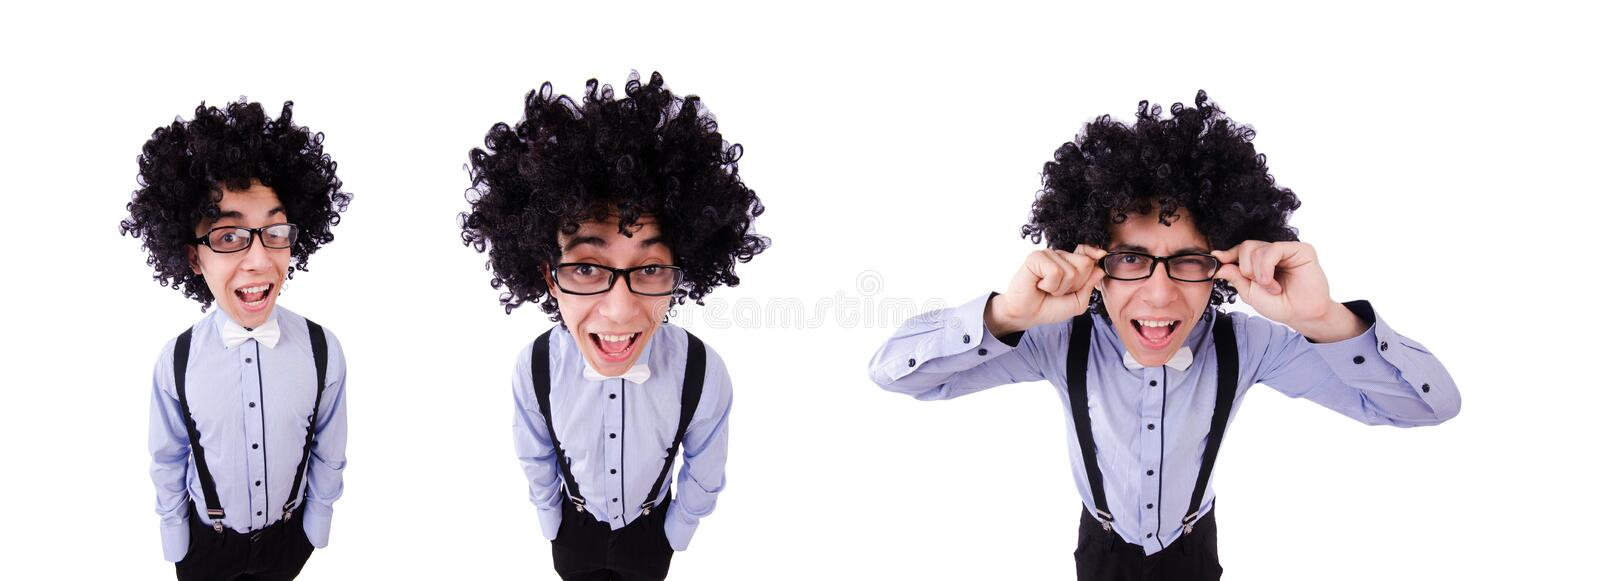 Funny guy isolated on the white background. The funny guy isolated on the white background stock photo